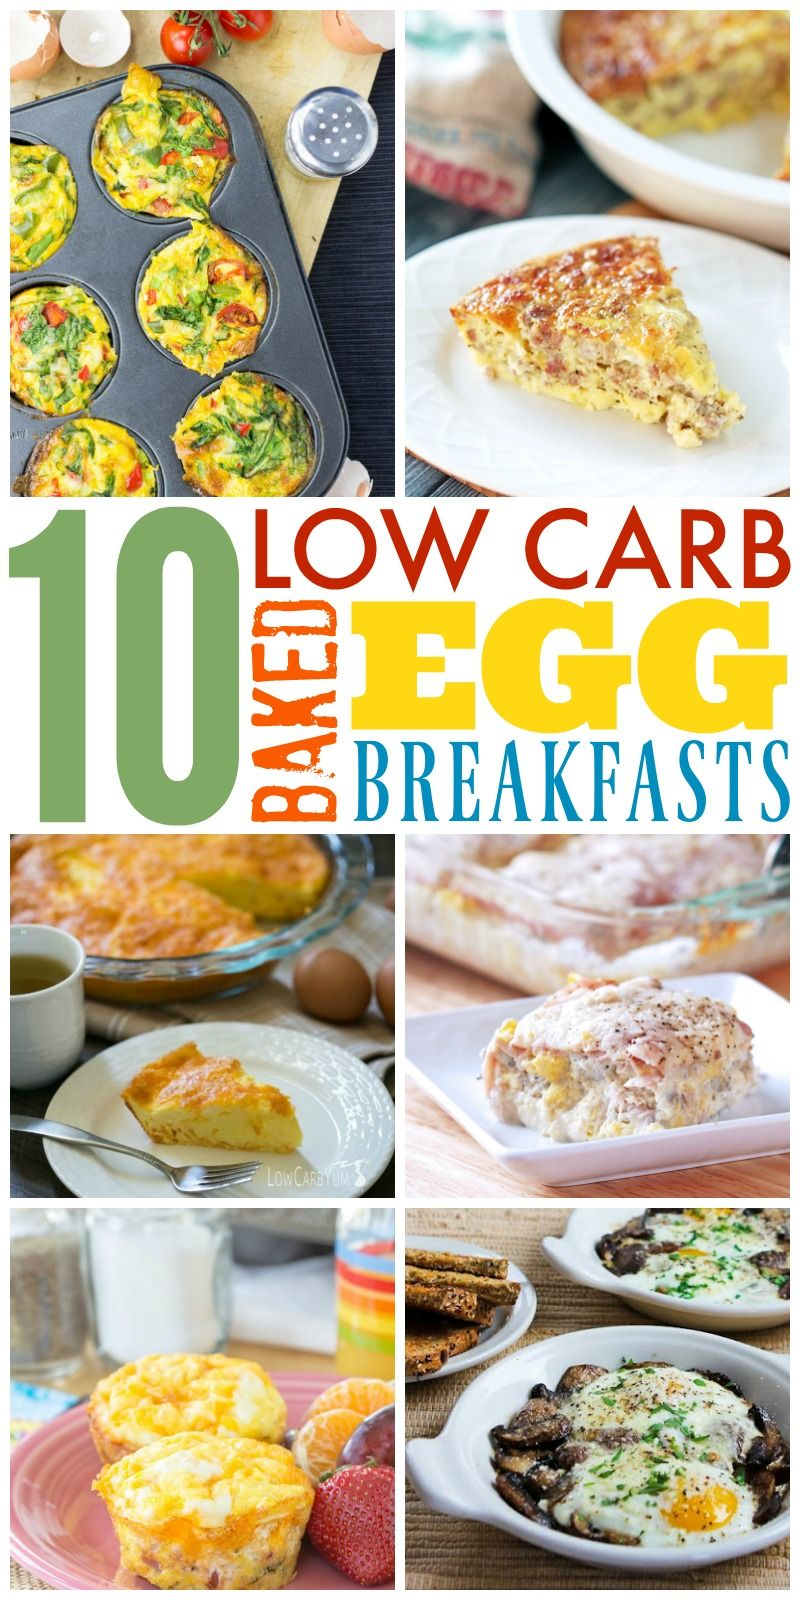 Baked Eggs 10 Low Carb Breakfast Ideas No Carb Diets Egg Grapefruit Diet Low Carb Breakfast